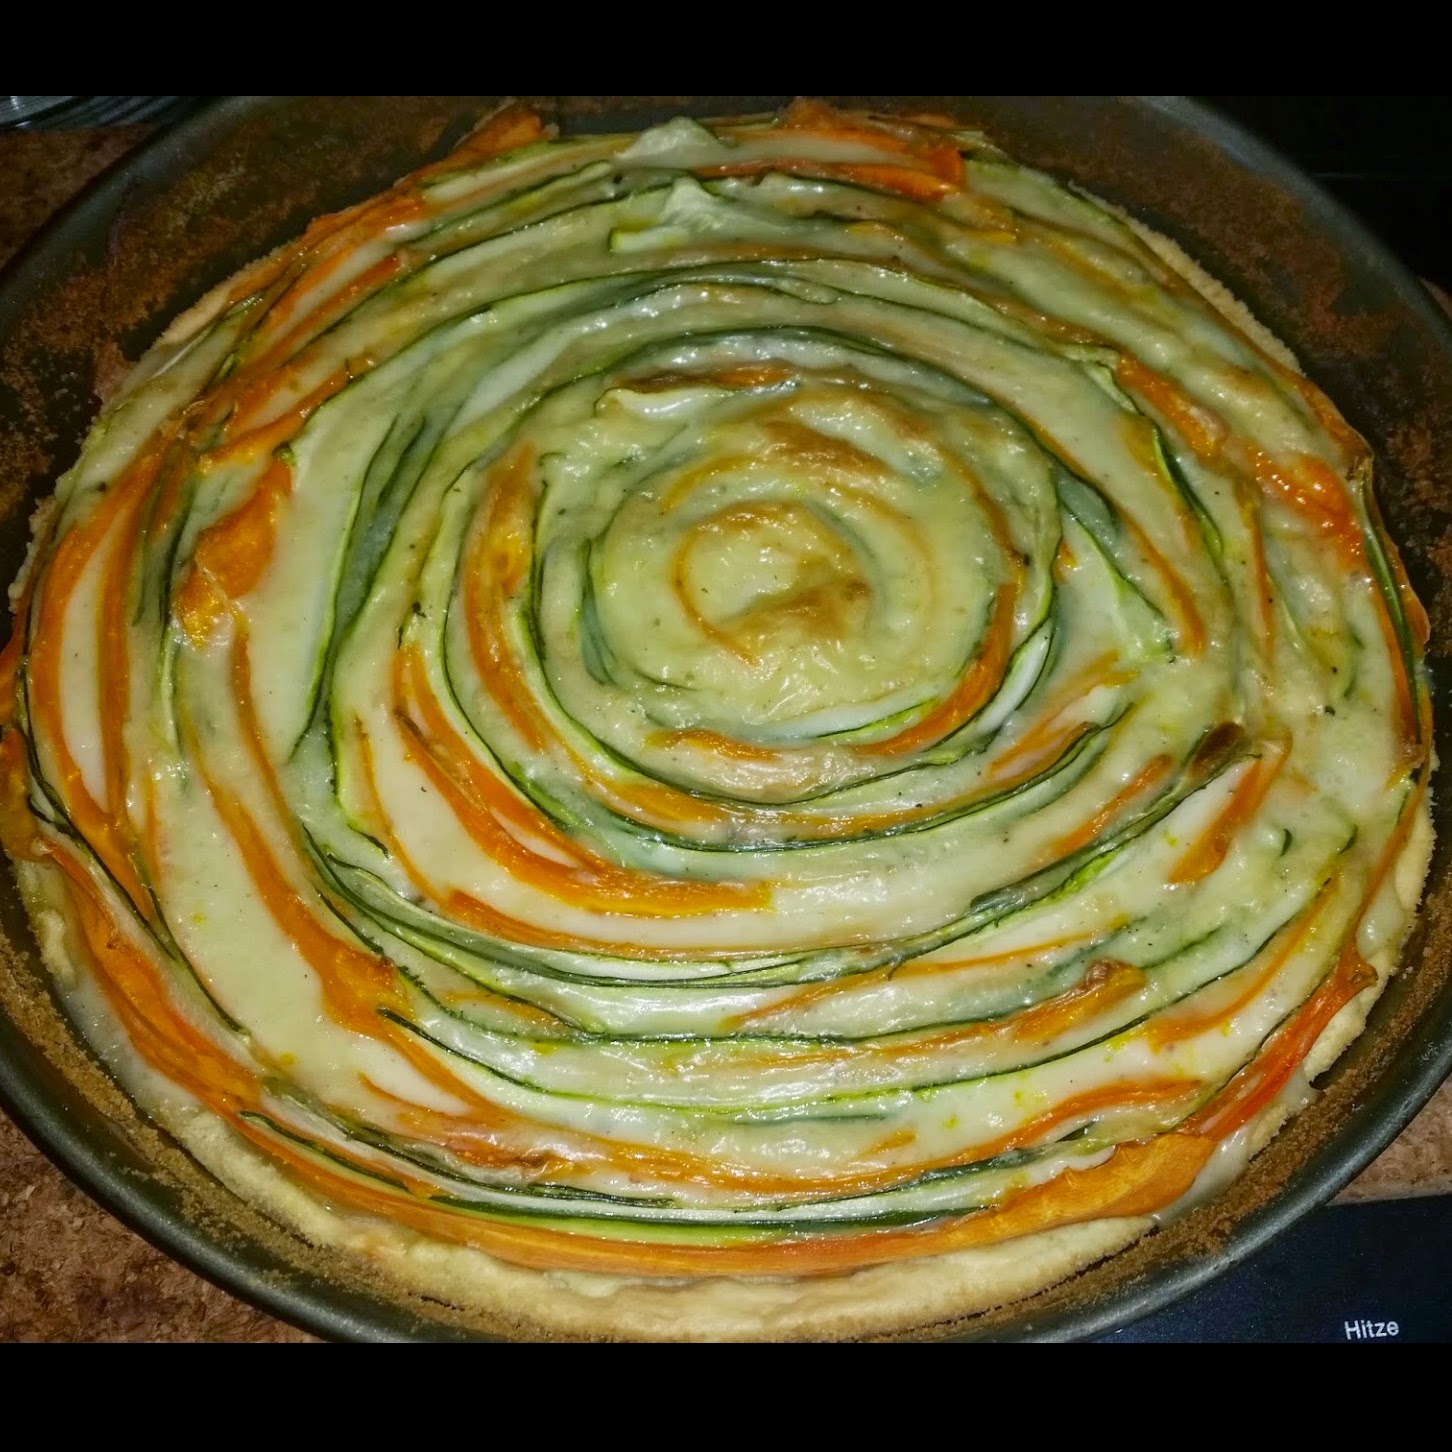 Sandy S Kitchendreams Karotten Zucchini Tarte